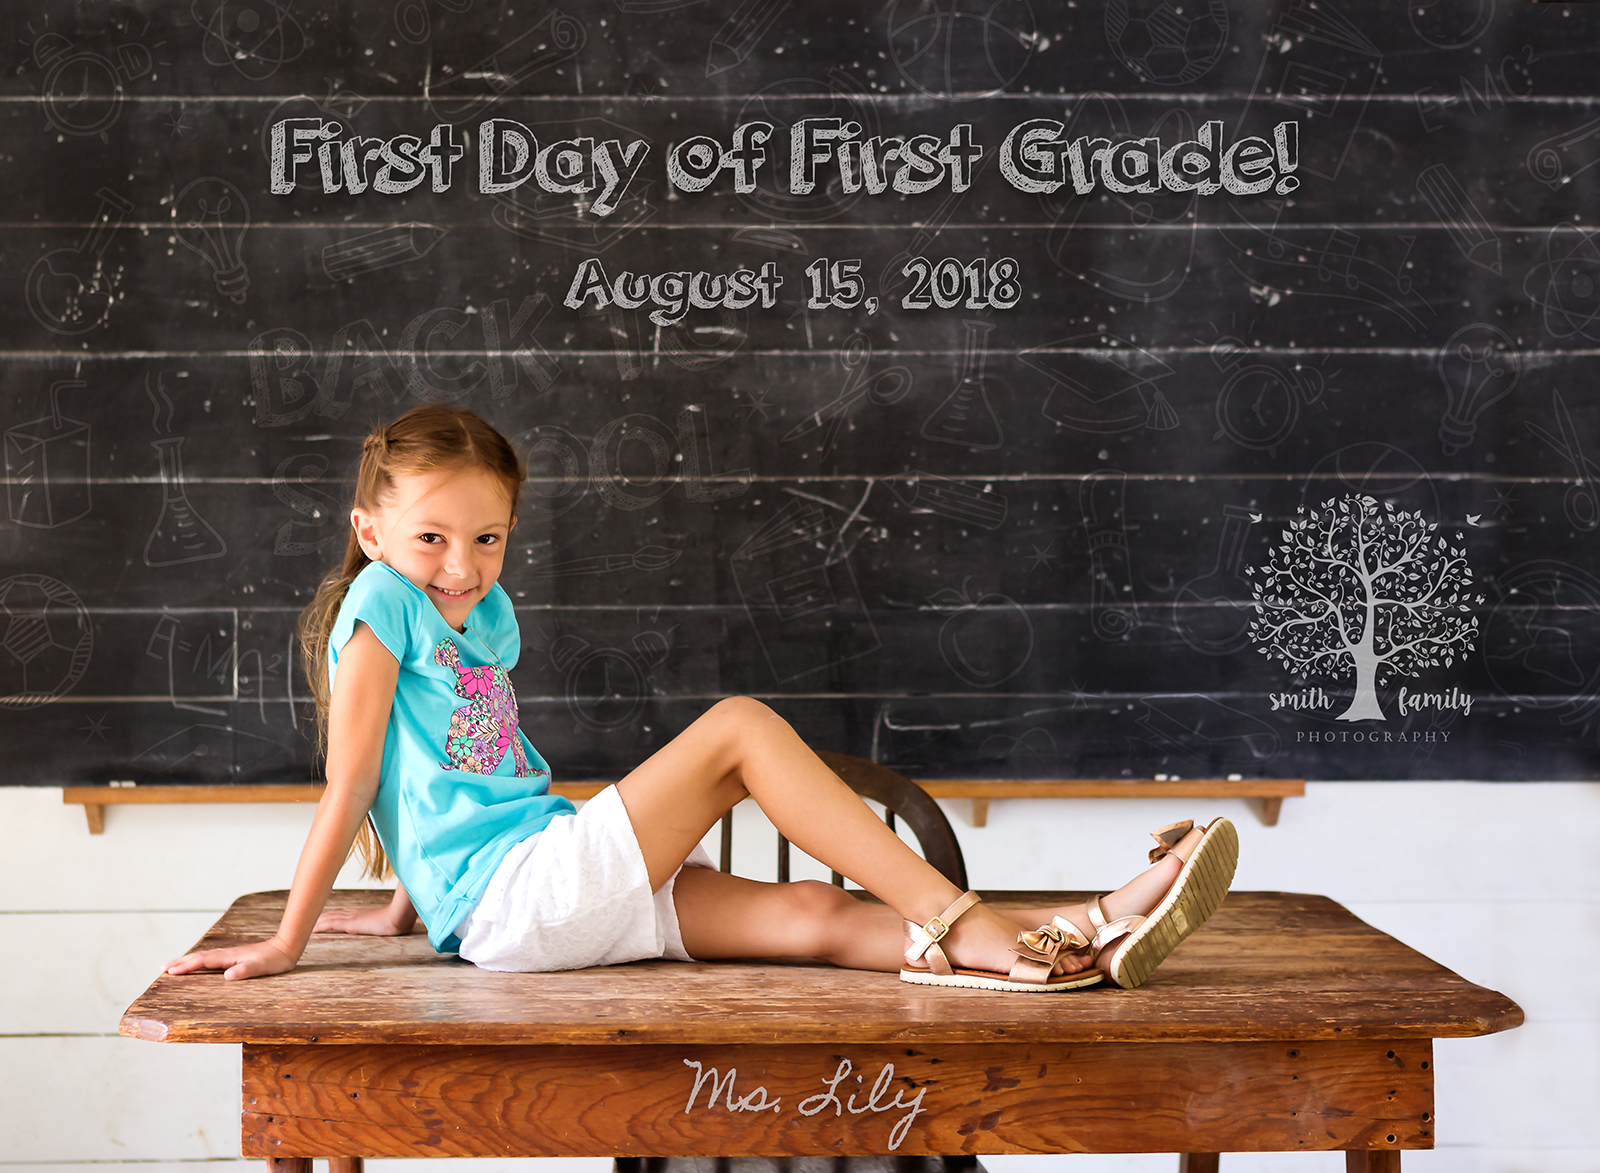 Lily - 6 years old. First day of First Grade